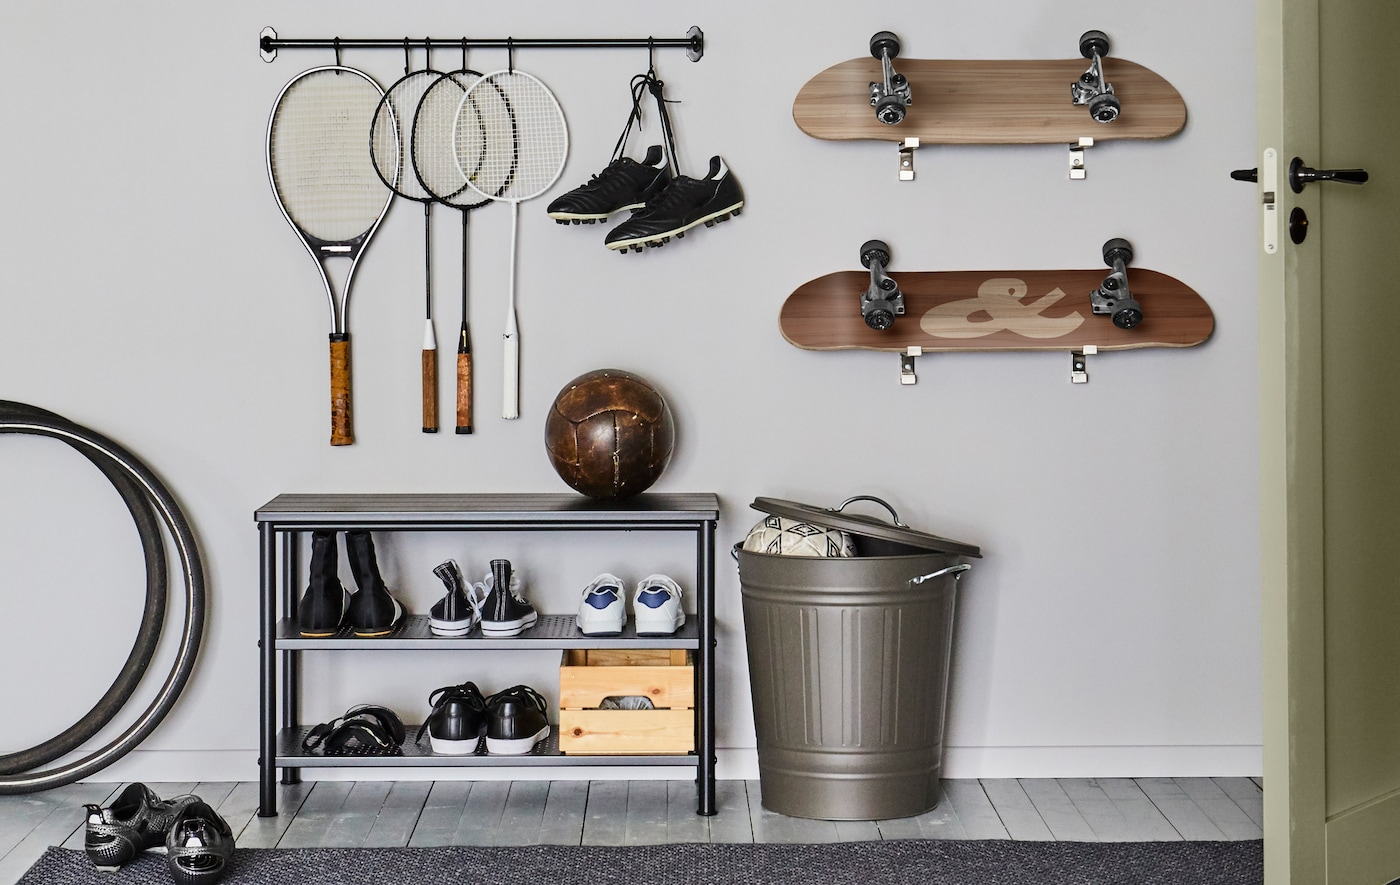 A black FINTORP rail holding a collection of hanging rackets on hooks, along with a few skateboards mounted to the wall.